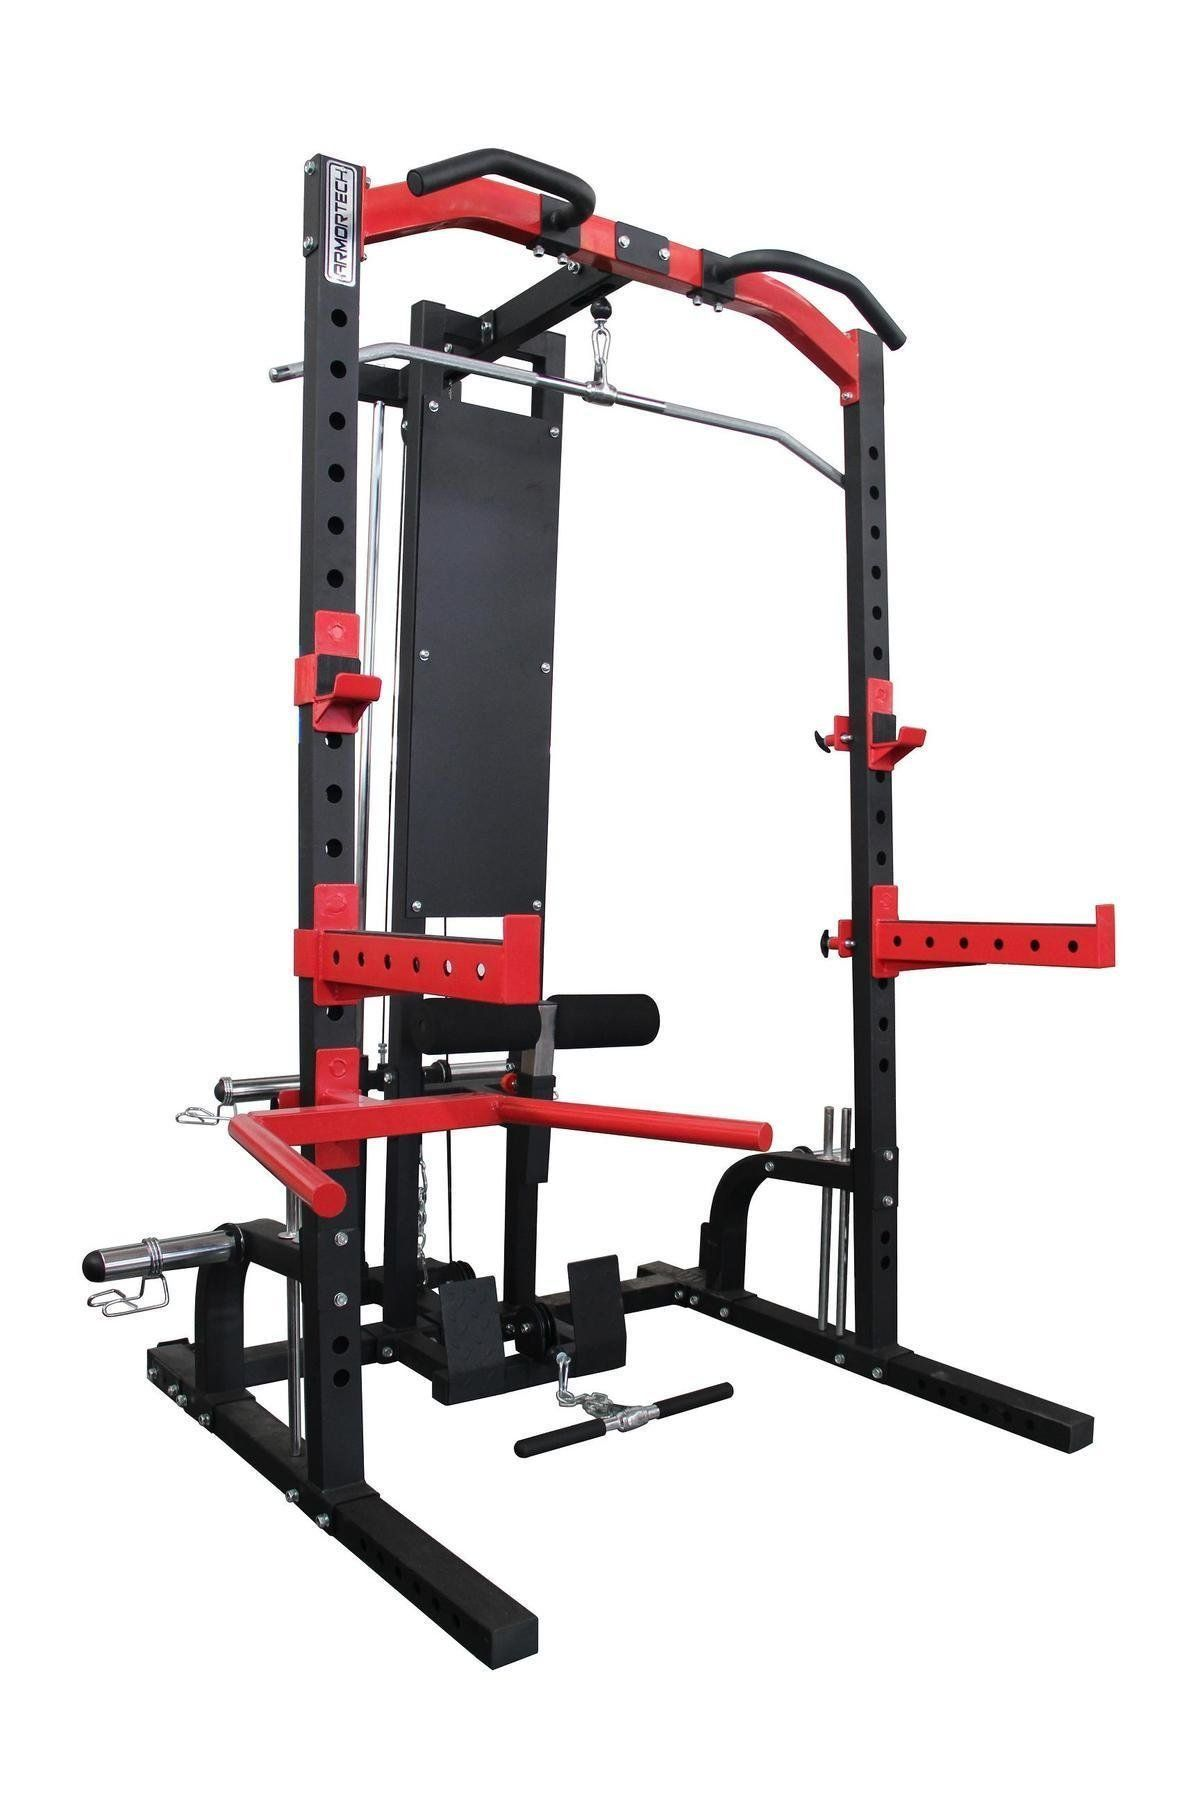 Large View (With images) Half rack, Squat rack, At home gym